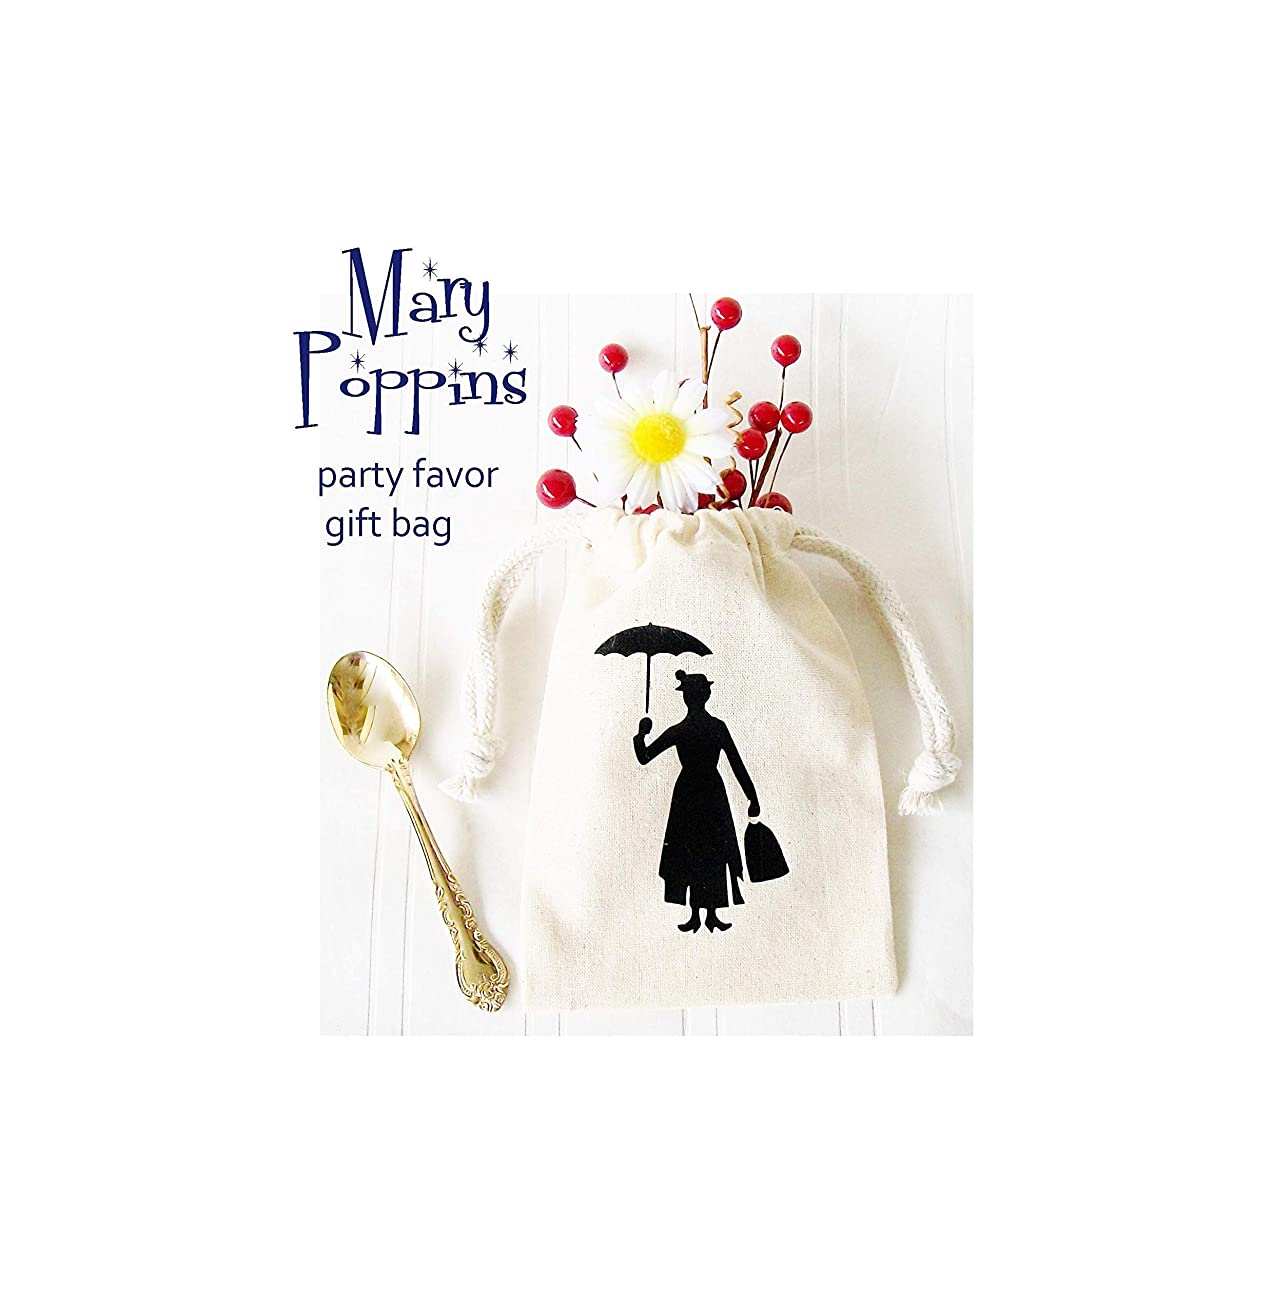 Mary Poppins Party Favor Gift Bags Set of 6, 4